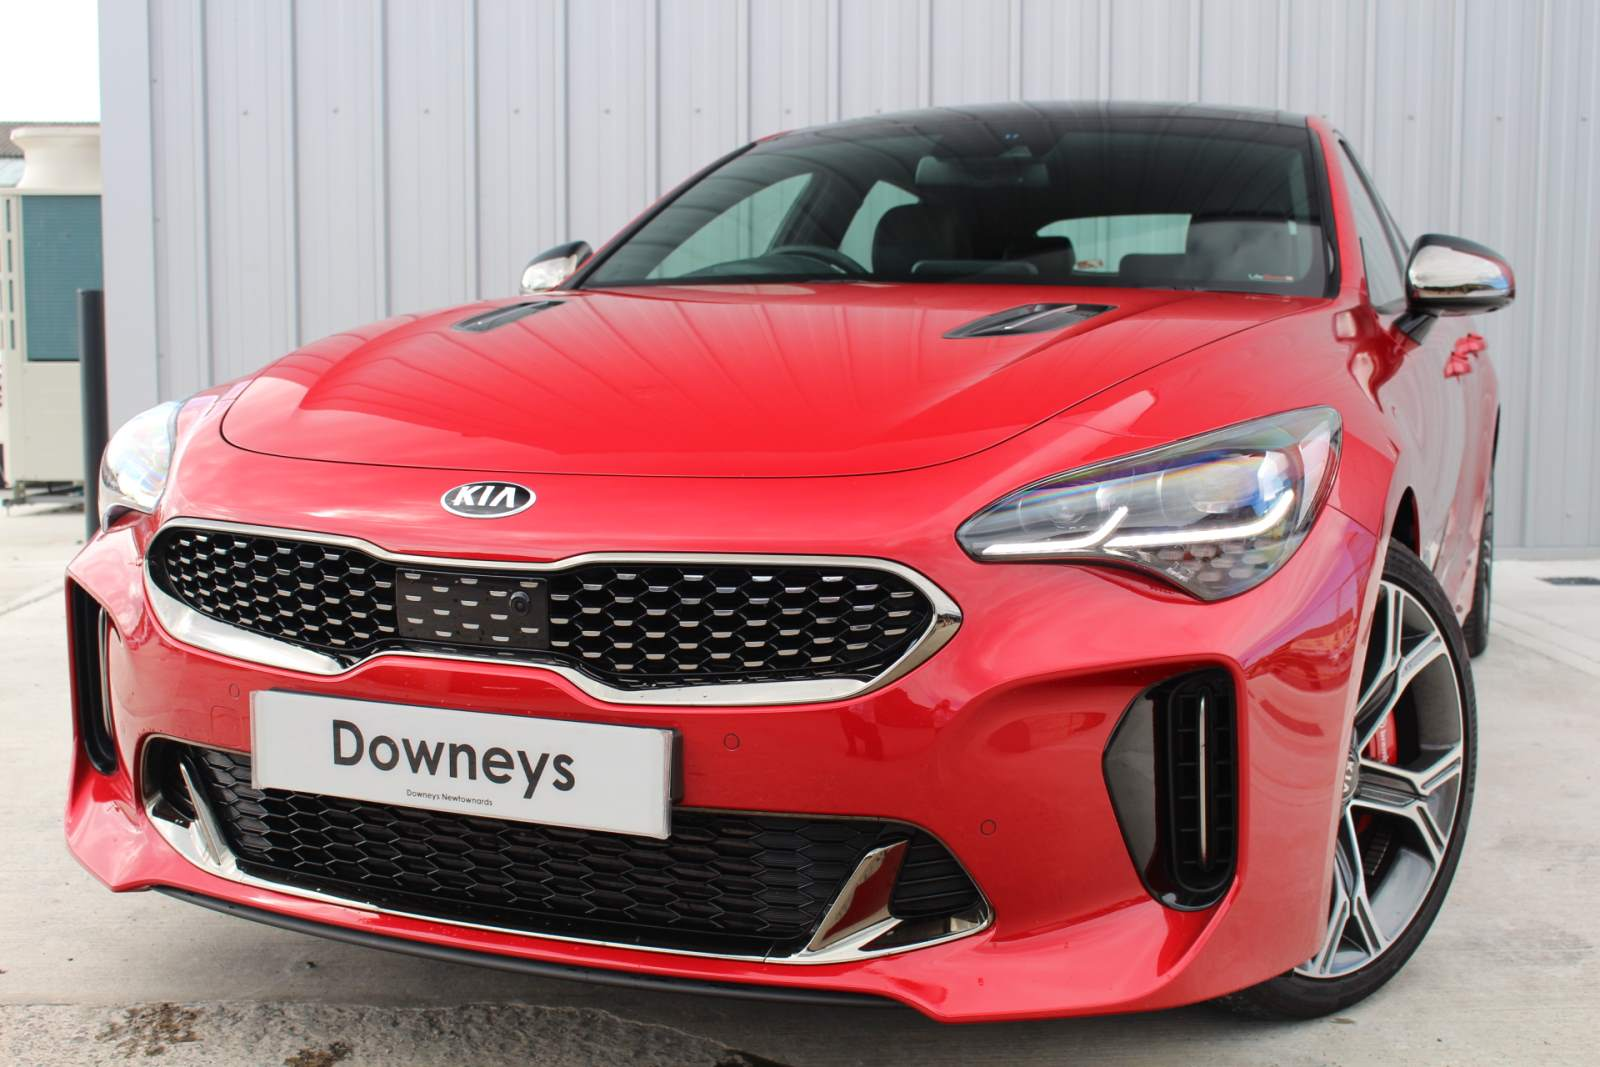 Kia STINGER 3.3 GDI GT S AUTO FULL KIA WARRANTY UNTIL NOVEMBER 2026